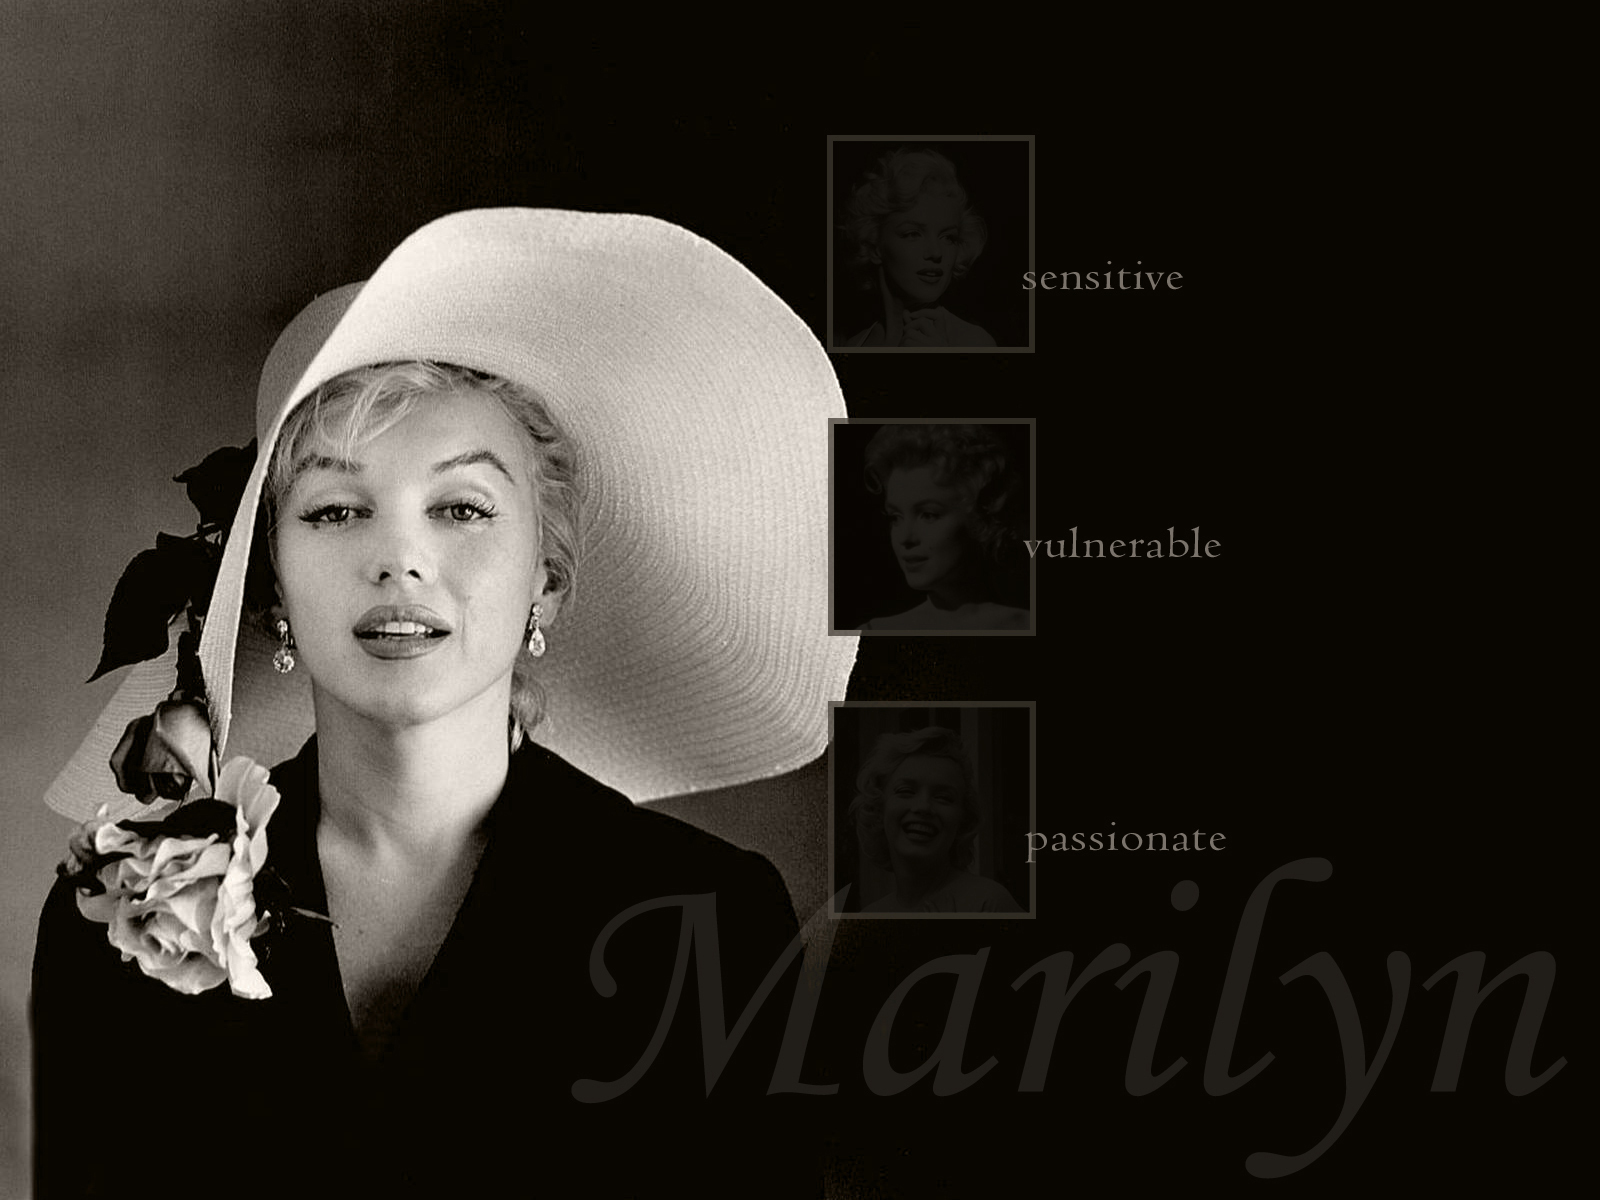 Marilyn - Marilyn Monroe Wallpaper (16578846) - Fanpop